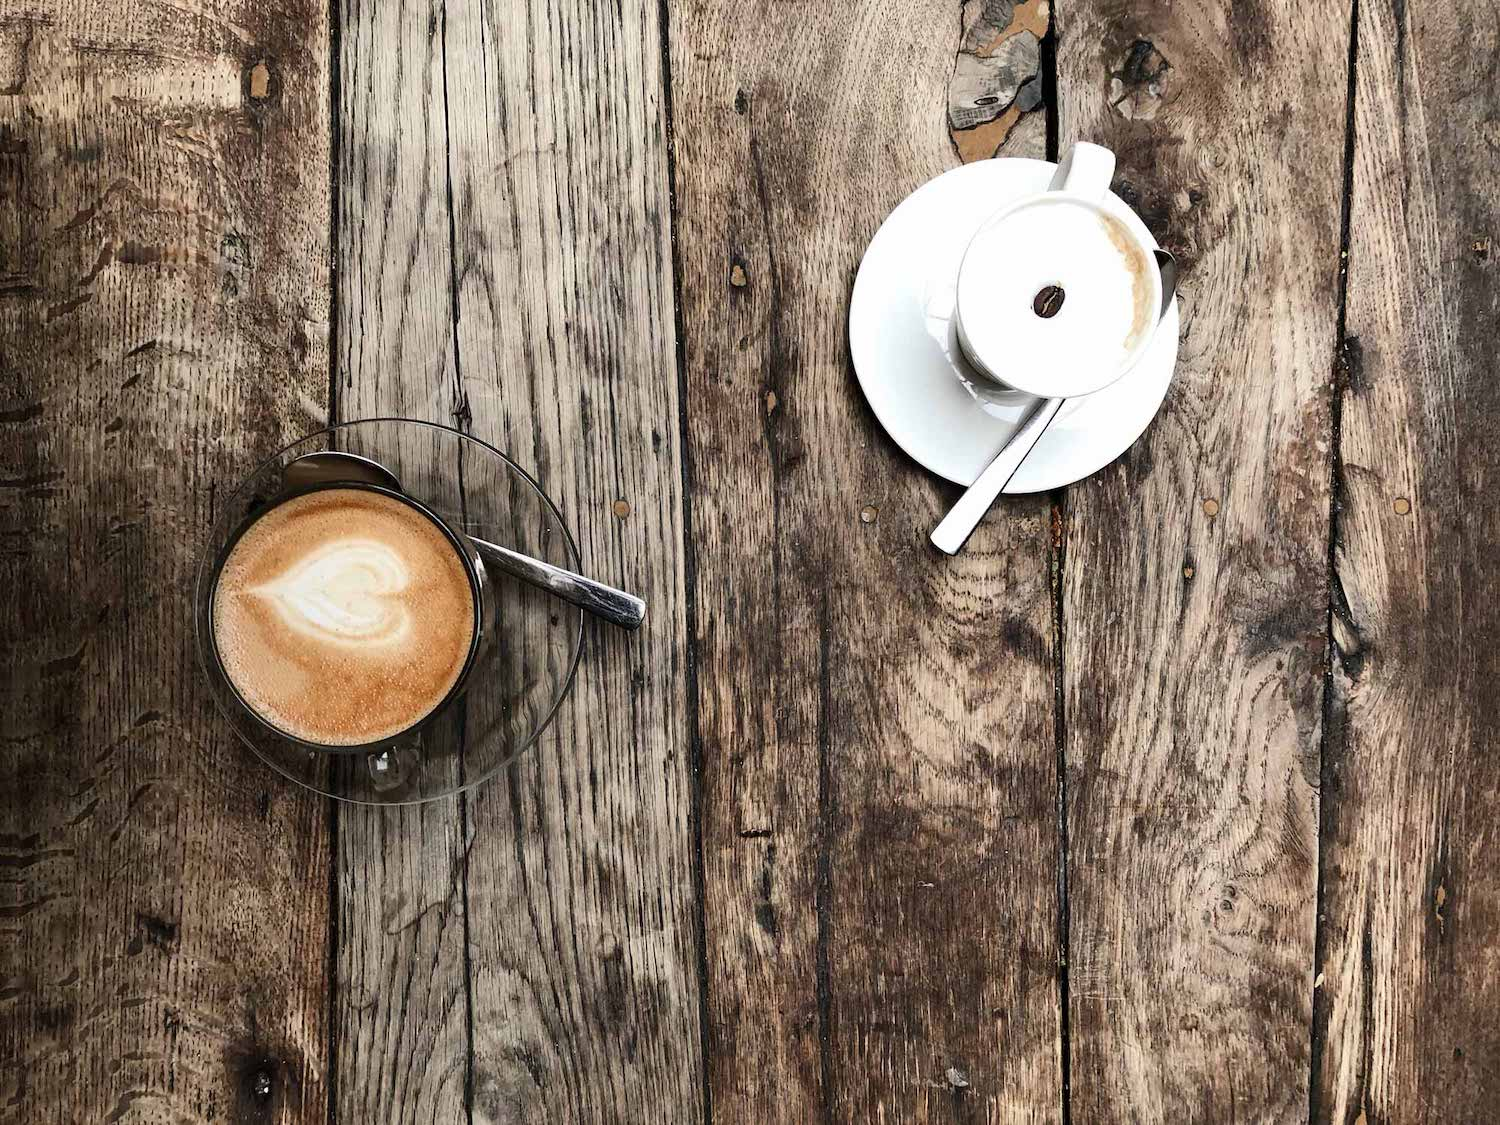 6-espresso-on-distressed-wooden-table